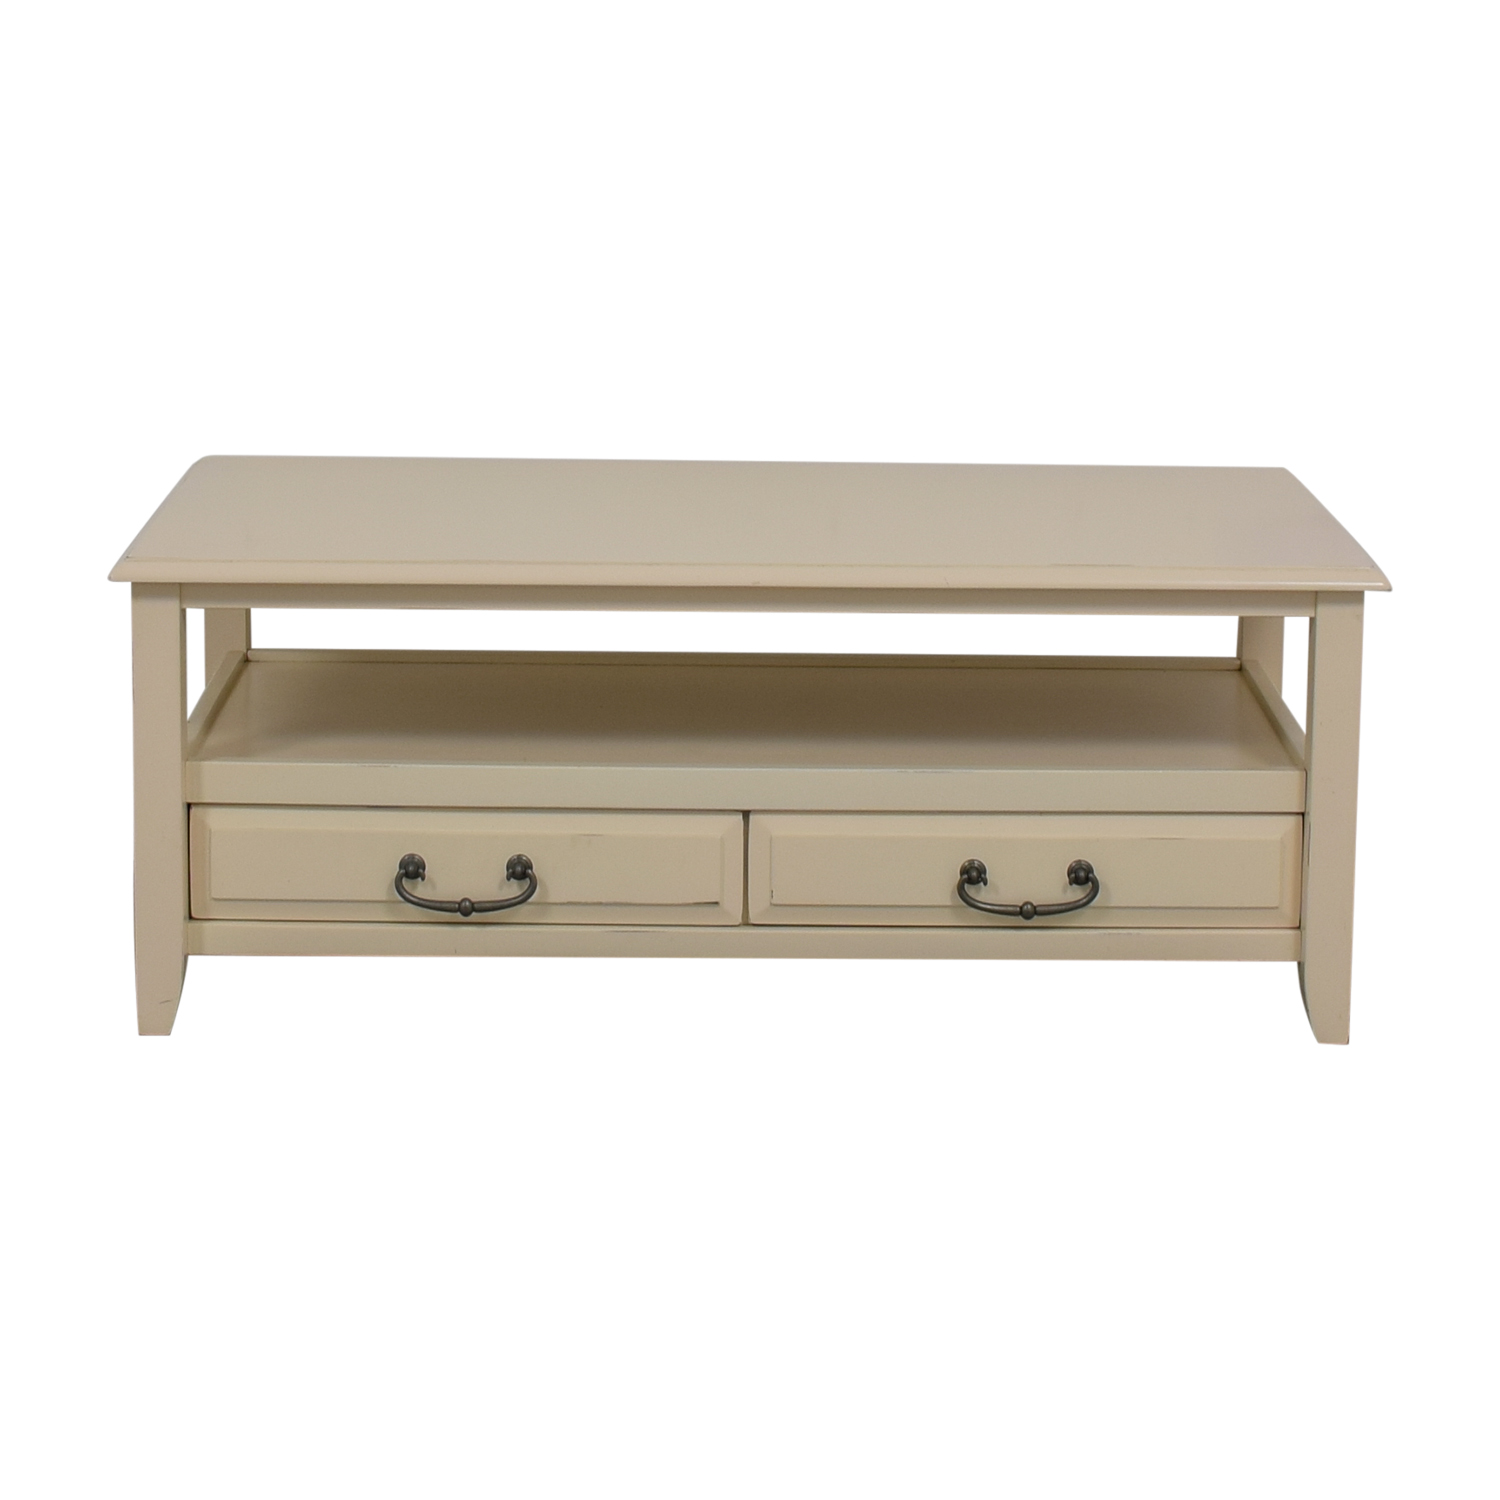 Pier 1 Imports White Two-Drawer Coffee Table / Sofas